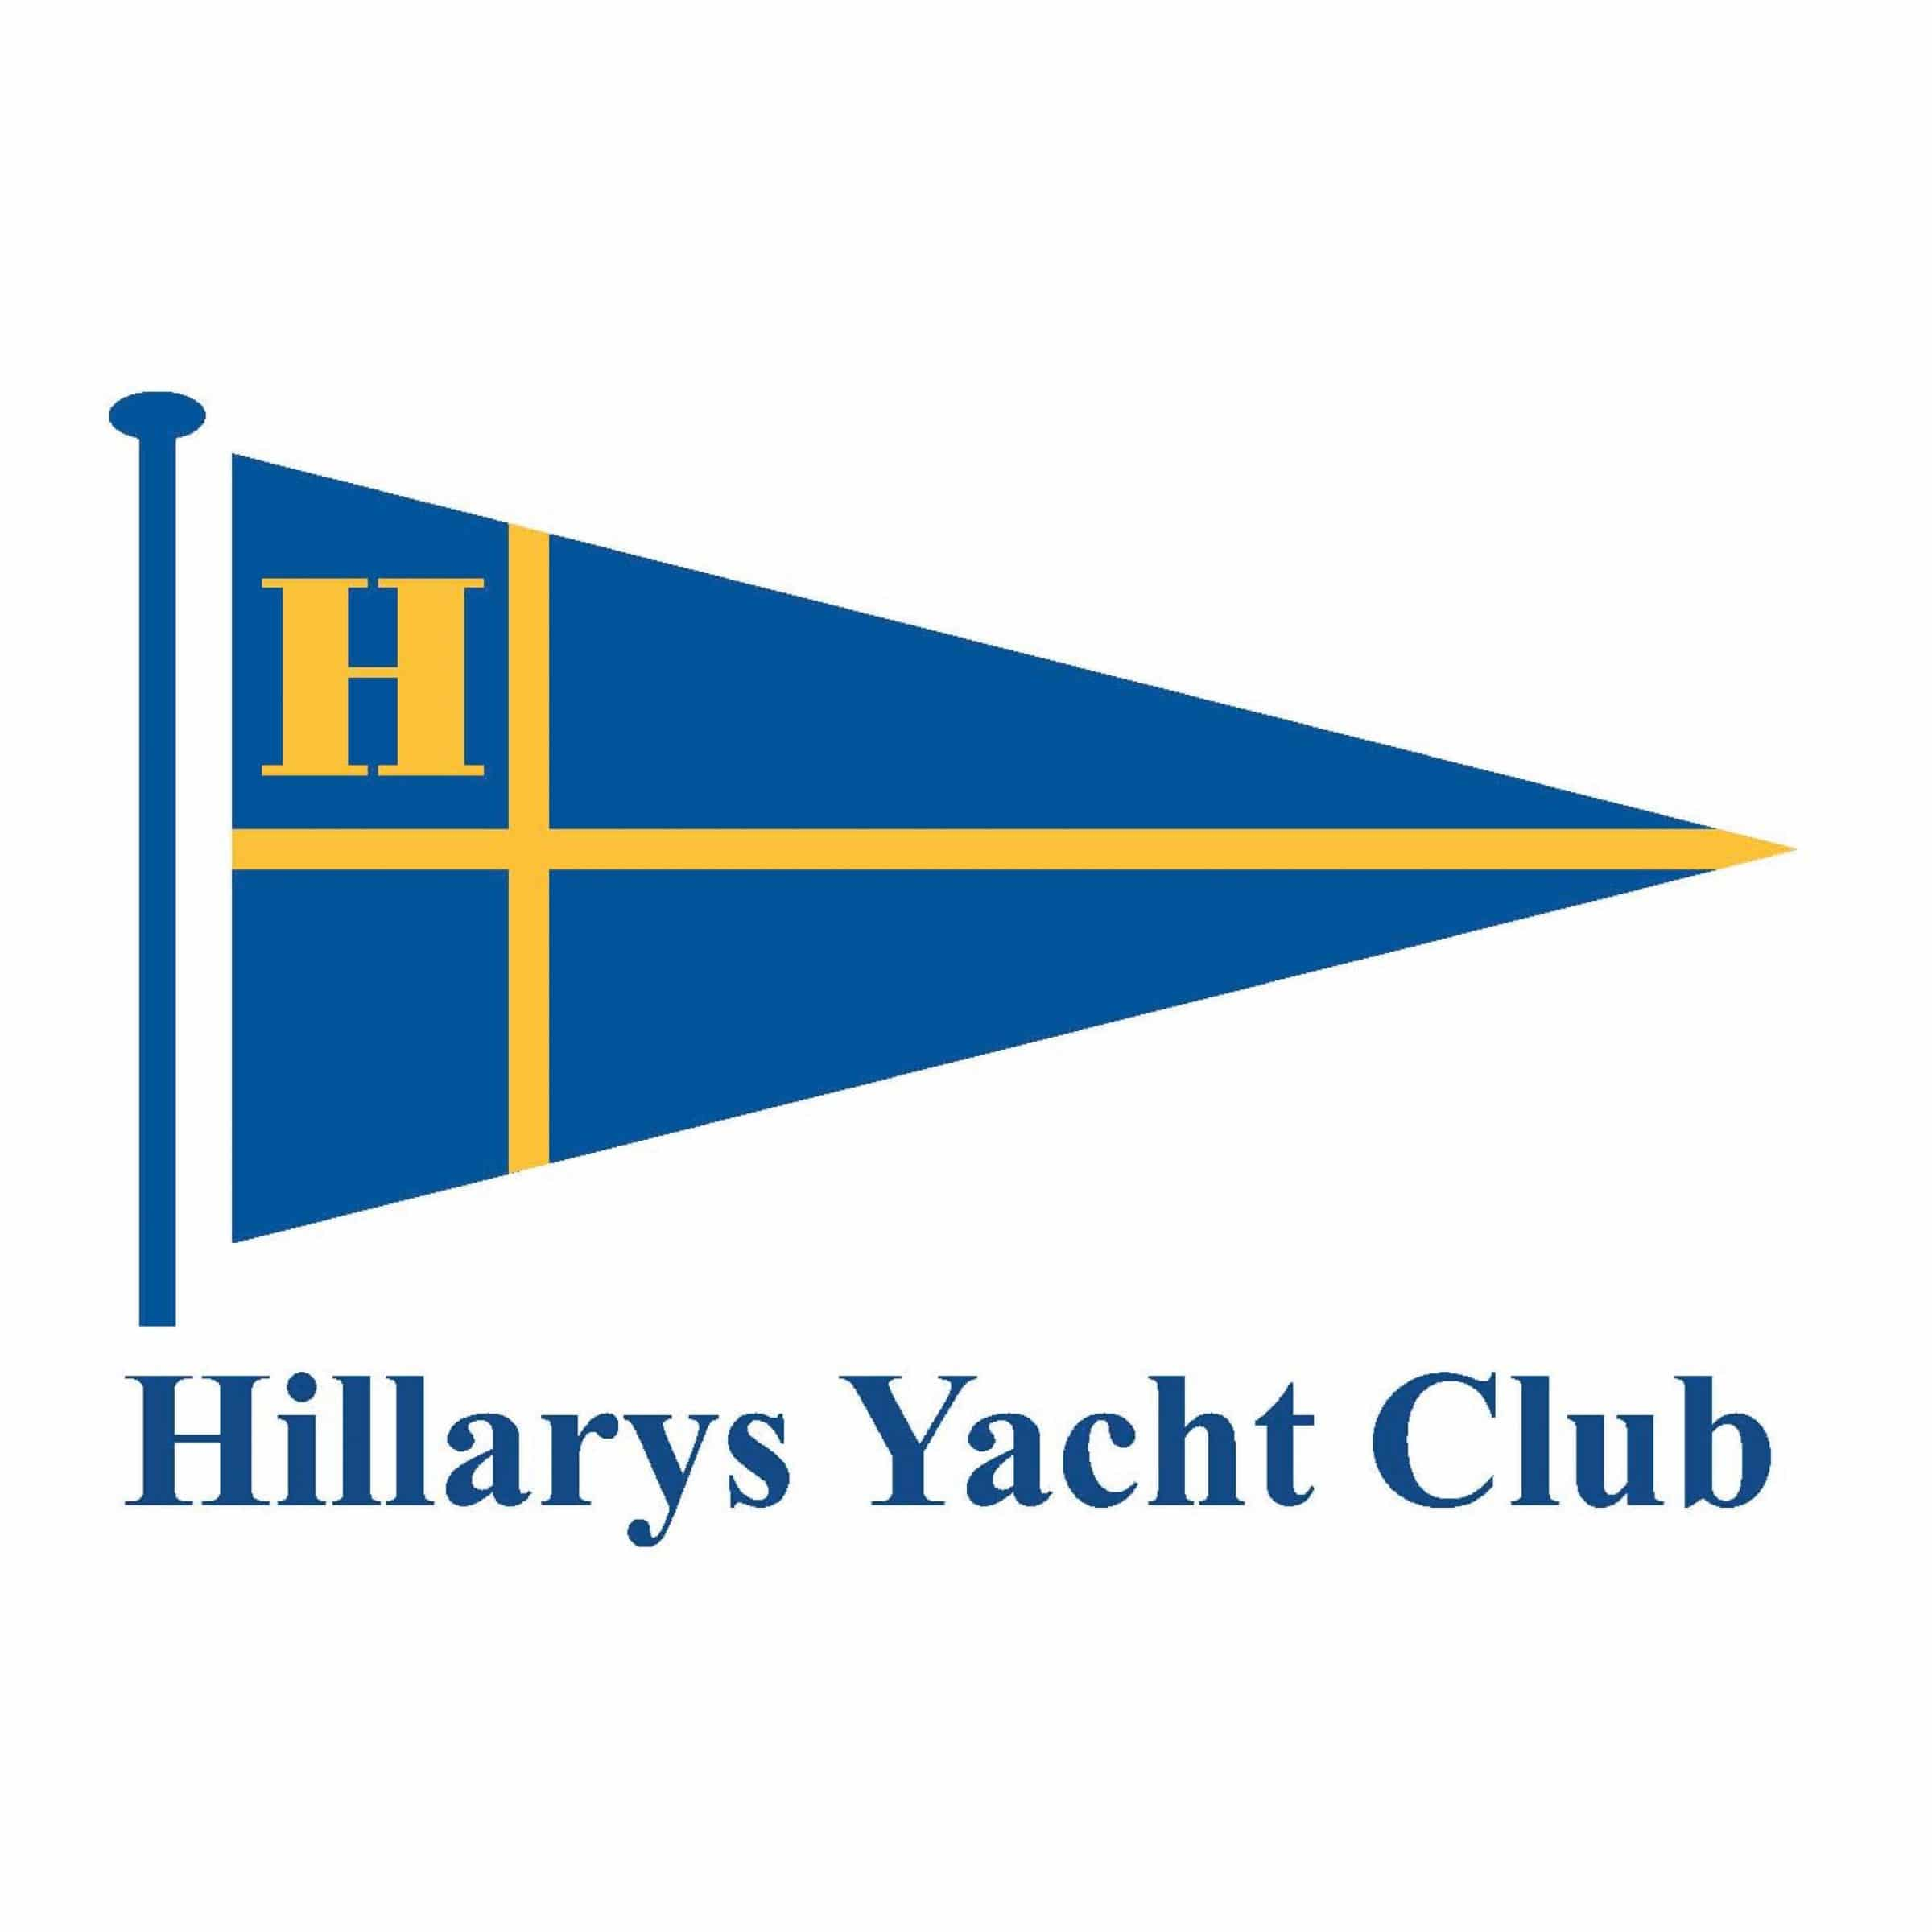 swan river sailing partner hillarys yacht club logo